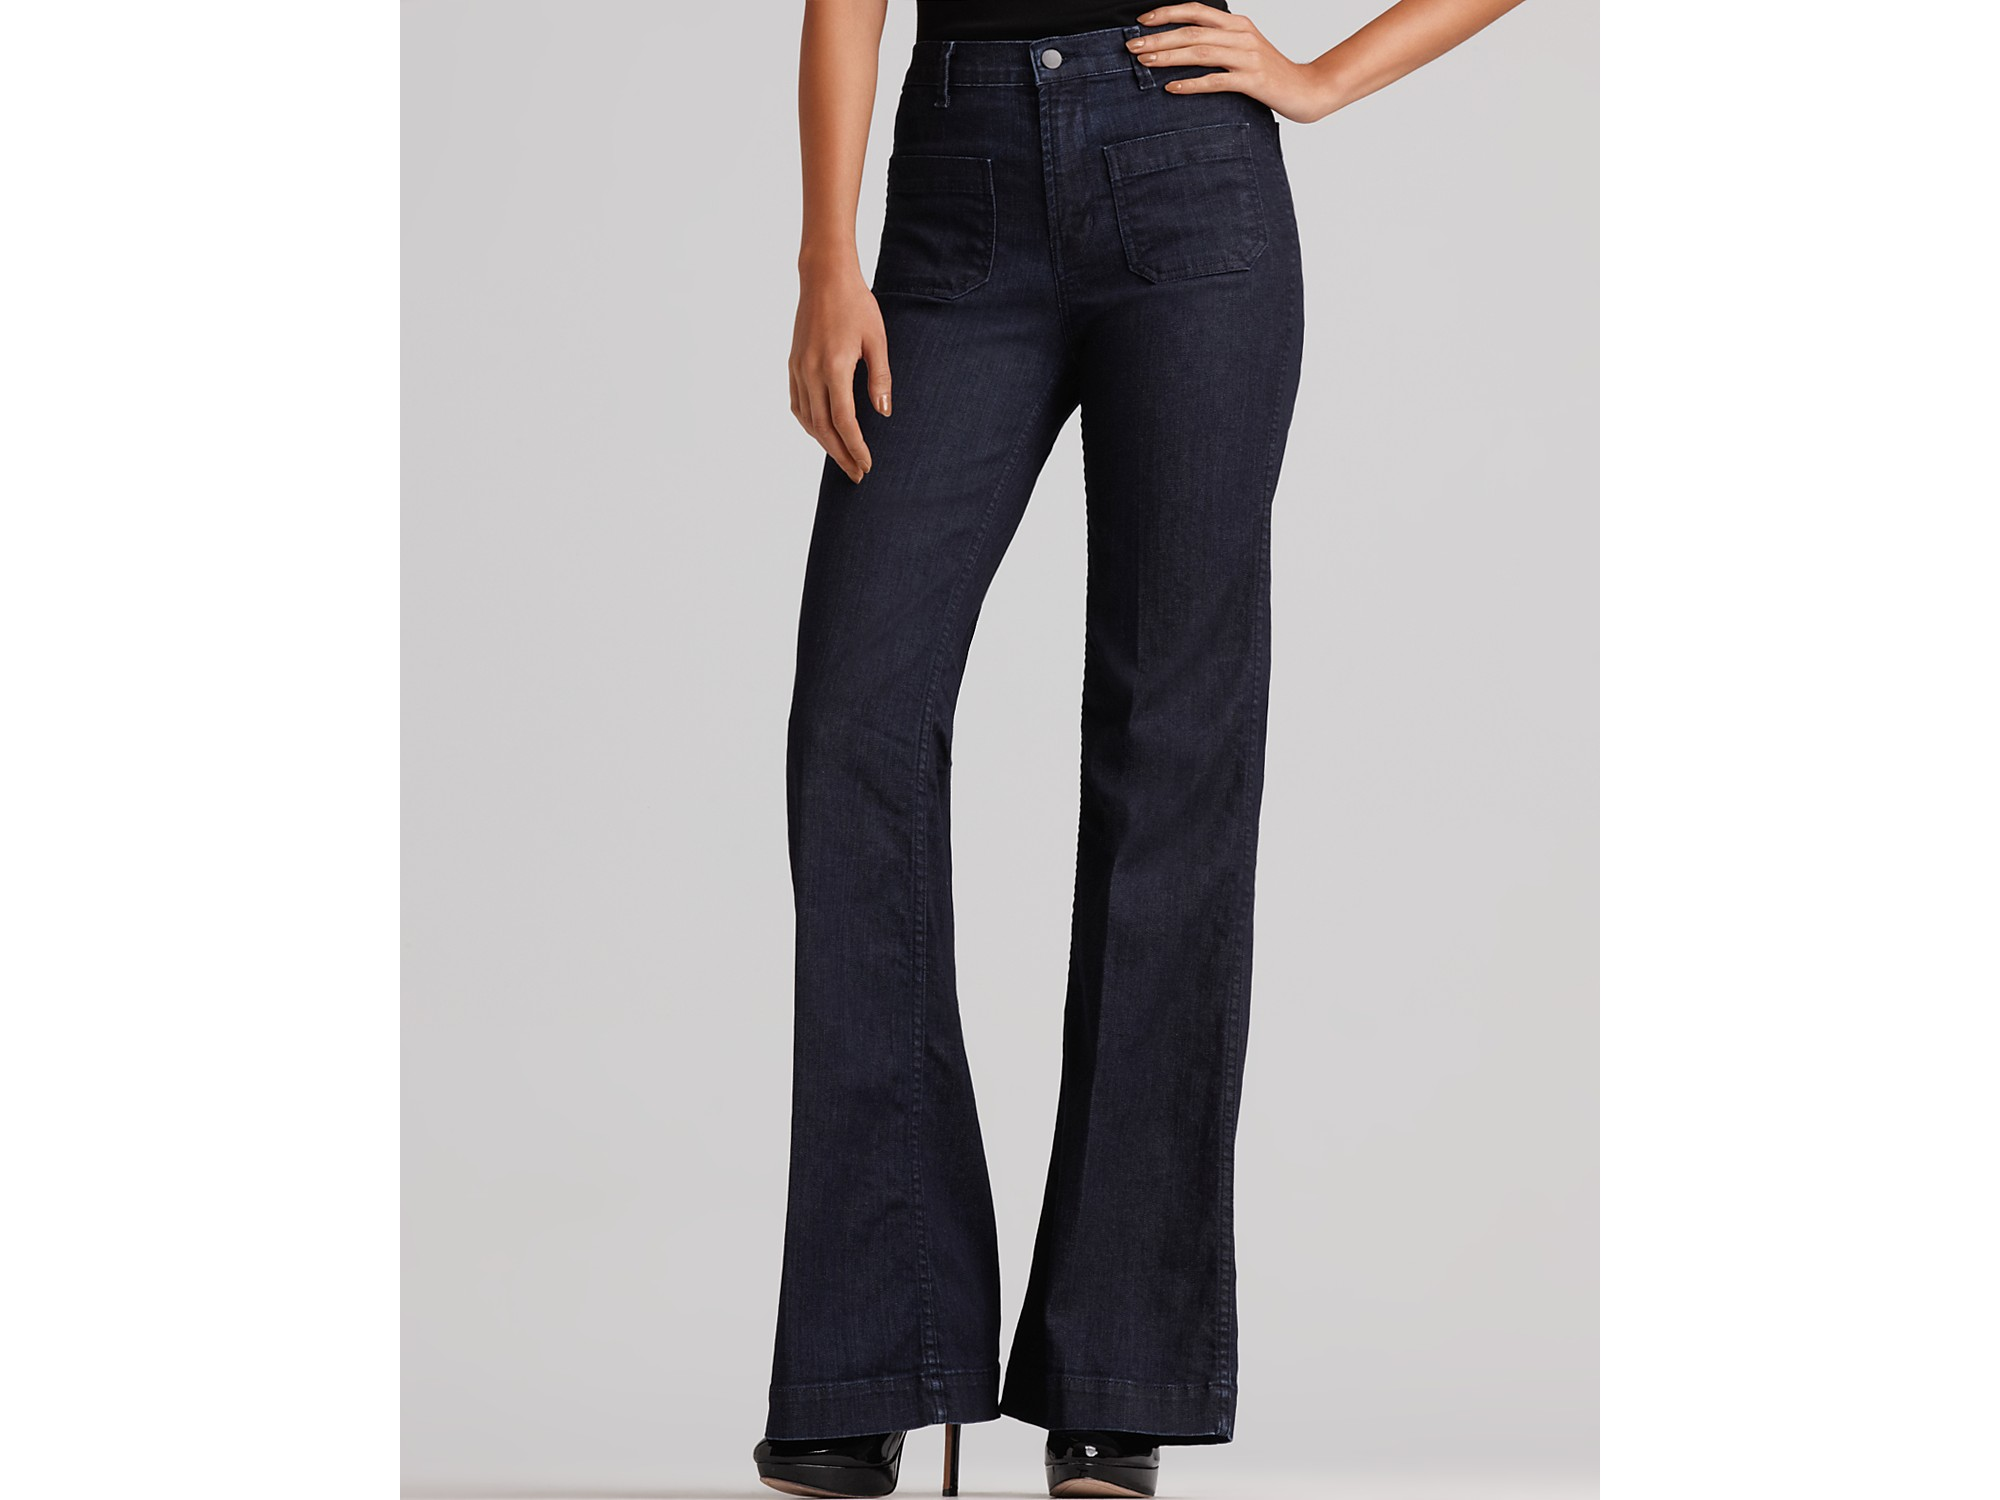 Ash J Brand Bette High Rise Wide Leg Jeans in Luna Wash in Blue | Lyst